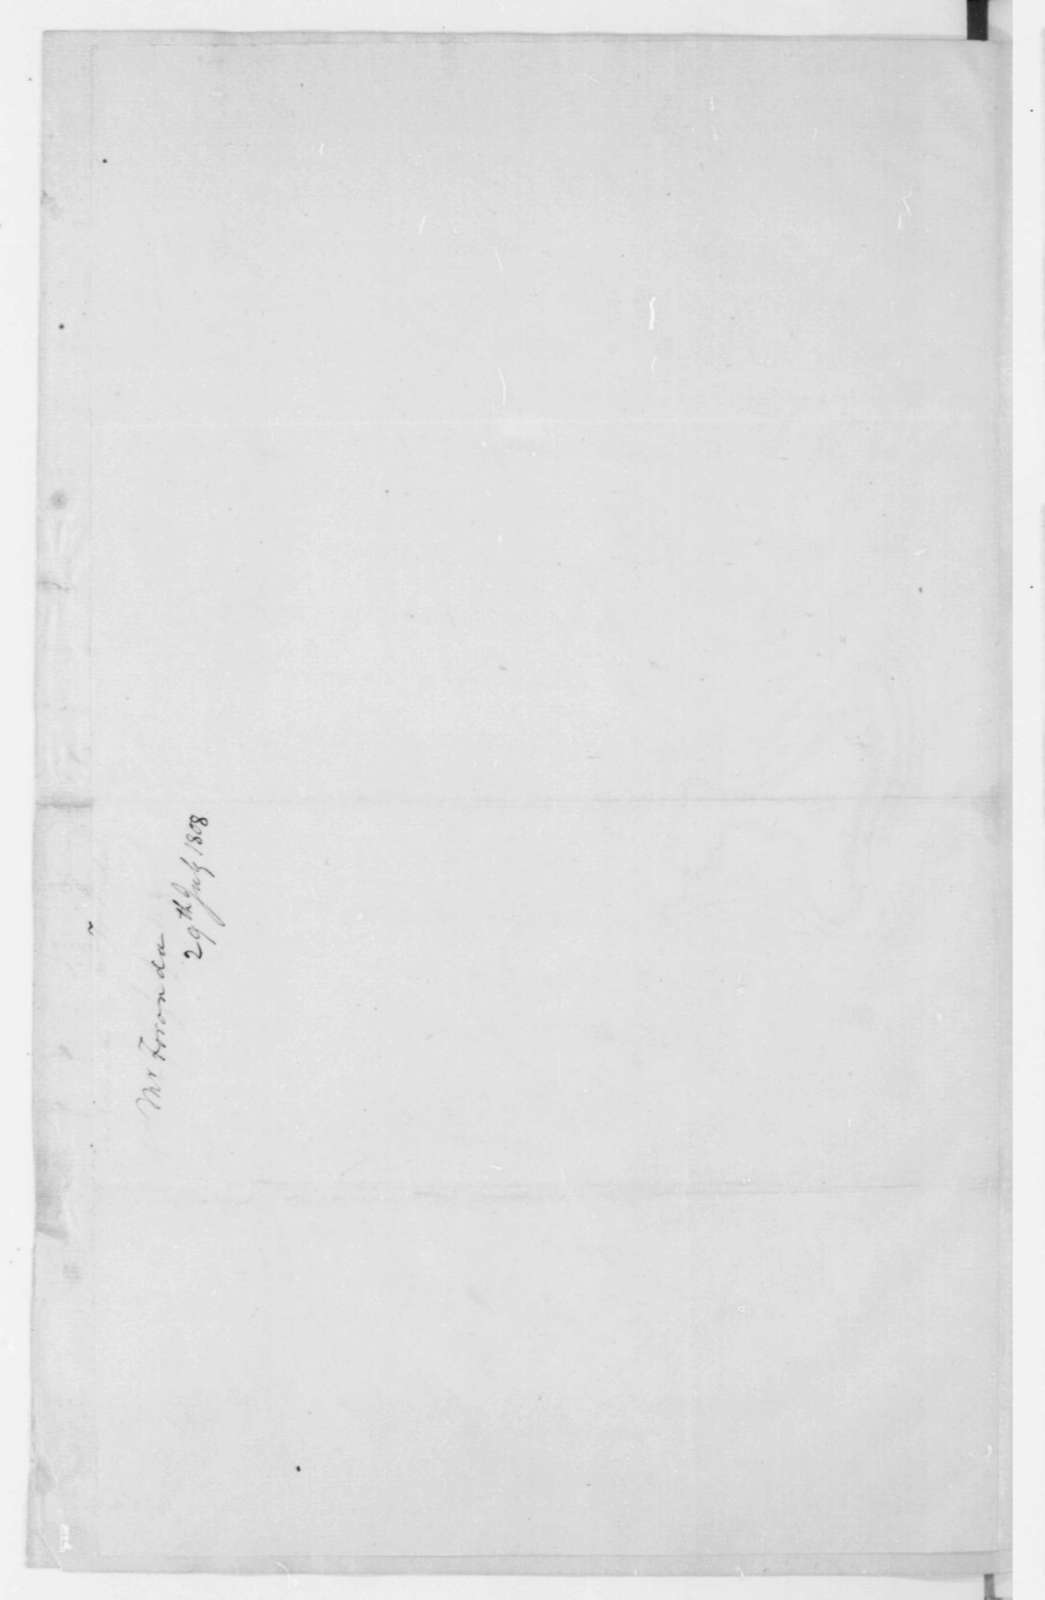 Valentin de Foronda to James Madison, July 29, 1808. Includes decree dated Mar 19 - In Spanish.